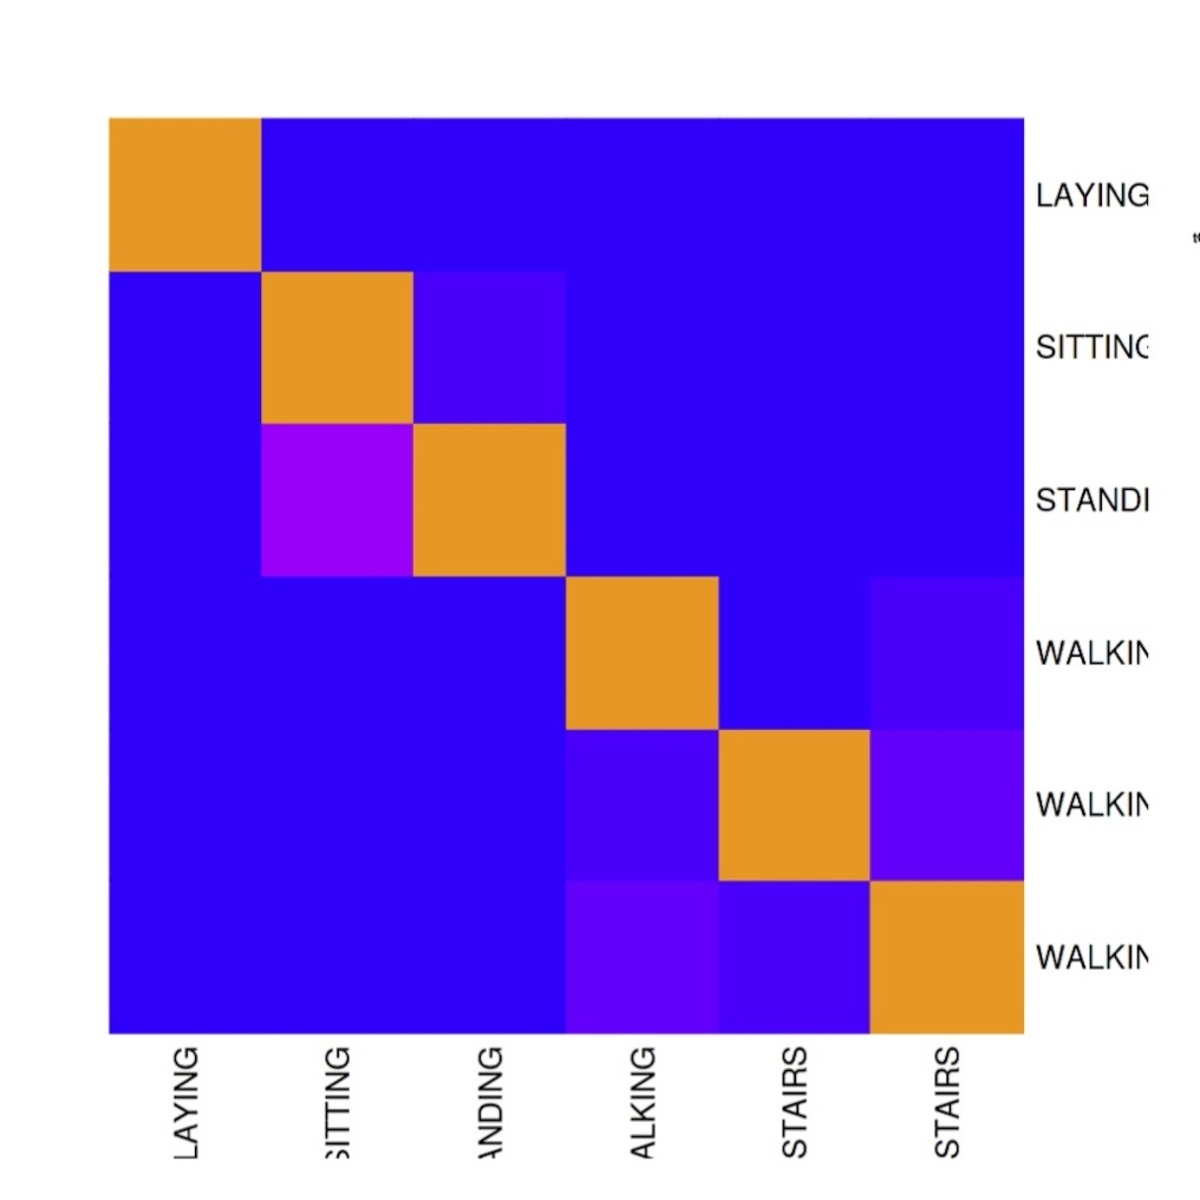 Simplified Human Activity Recognition w/Smartphone | Kaggle